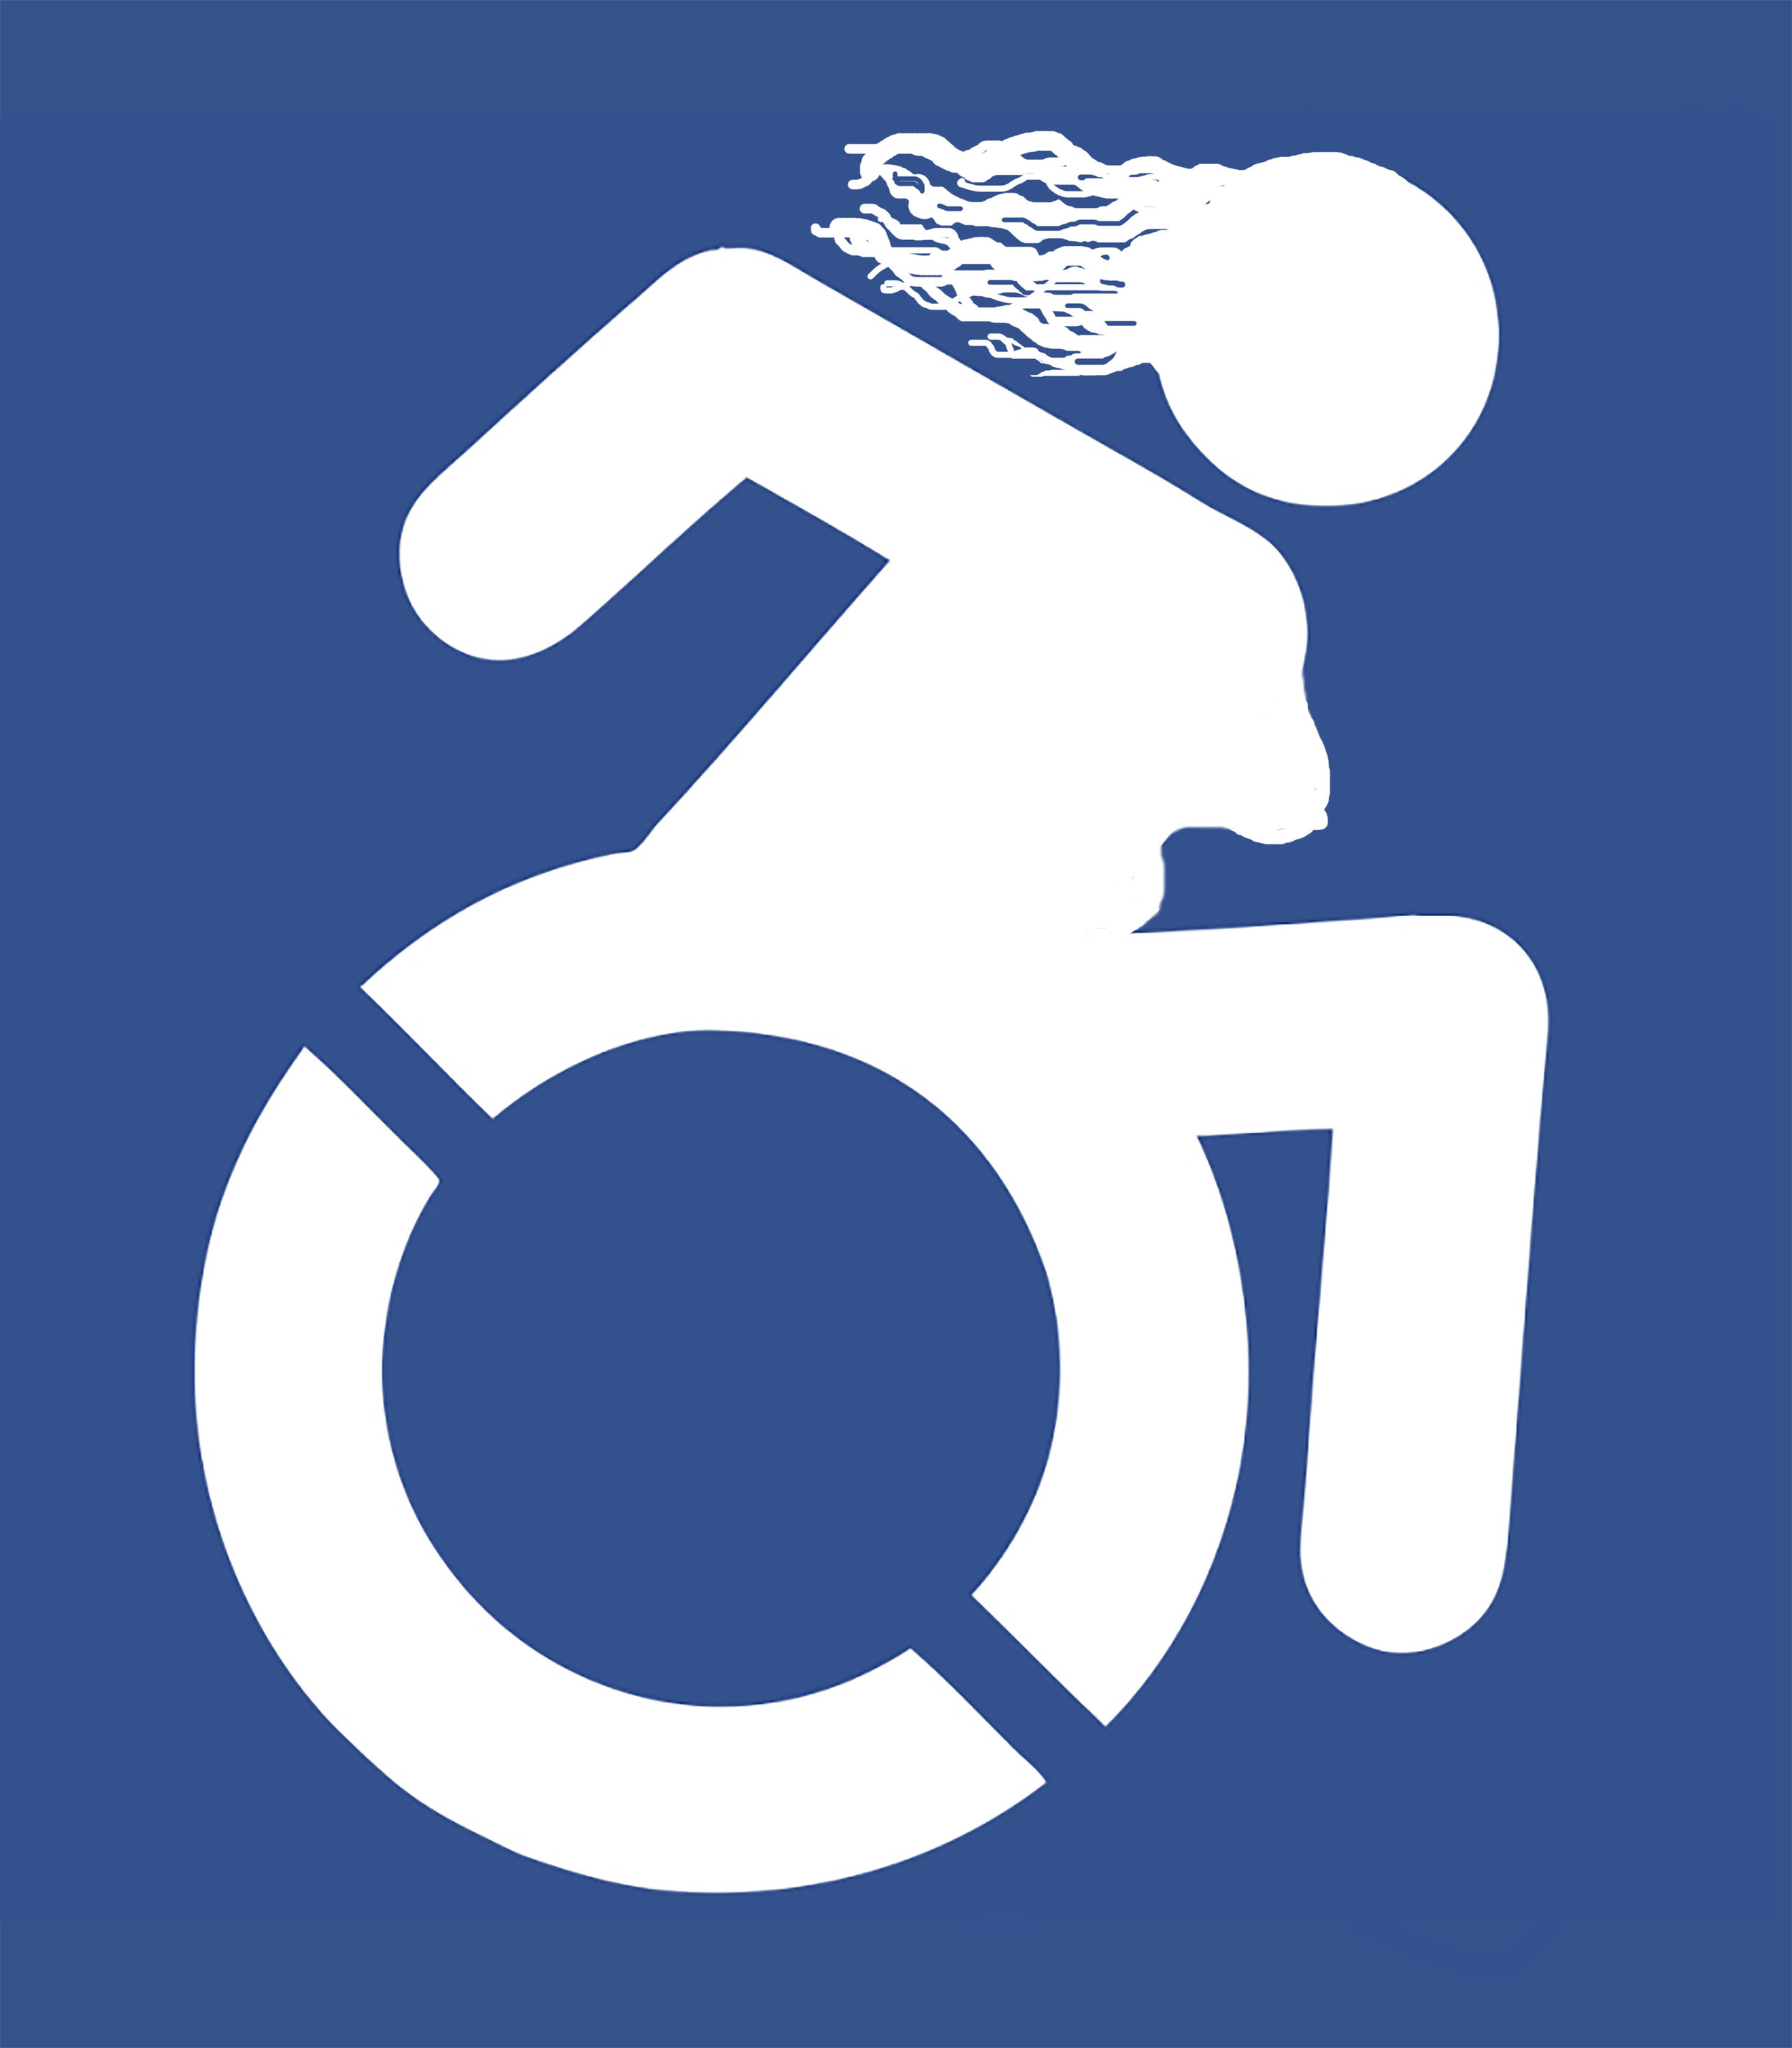 - I created these disability protest signs in collaboration with Katherine Sherwood and Tamar Beja for the Disability Contingent of the San Francisco & Oakland Women's Rights March of January 2017. If you would like to re-print these signs for your organization please get in touch with us!